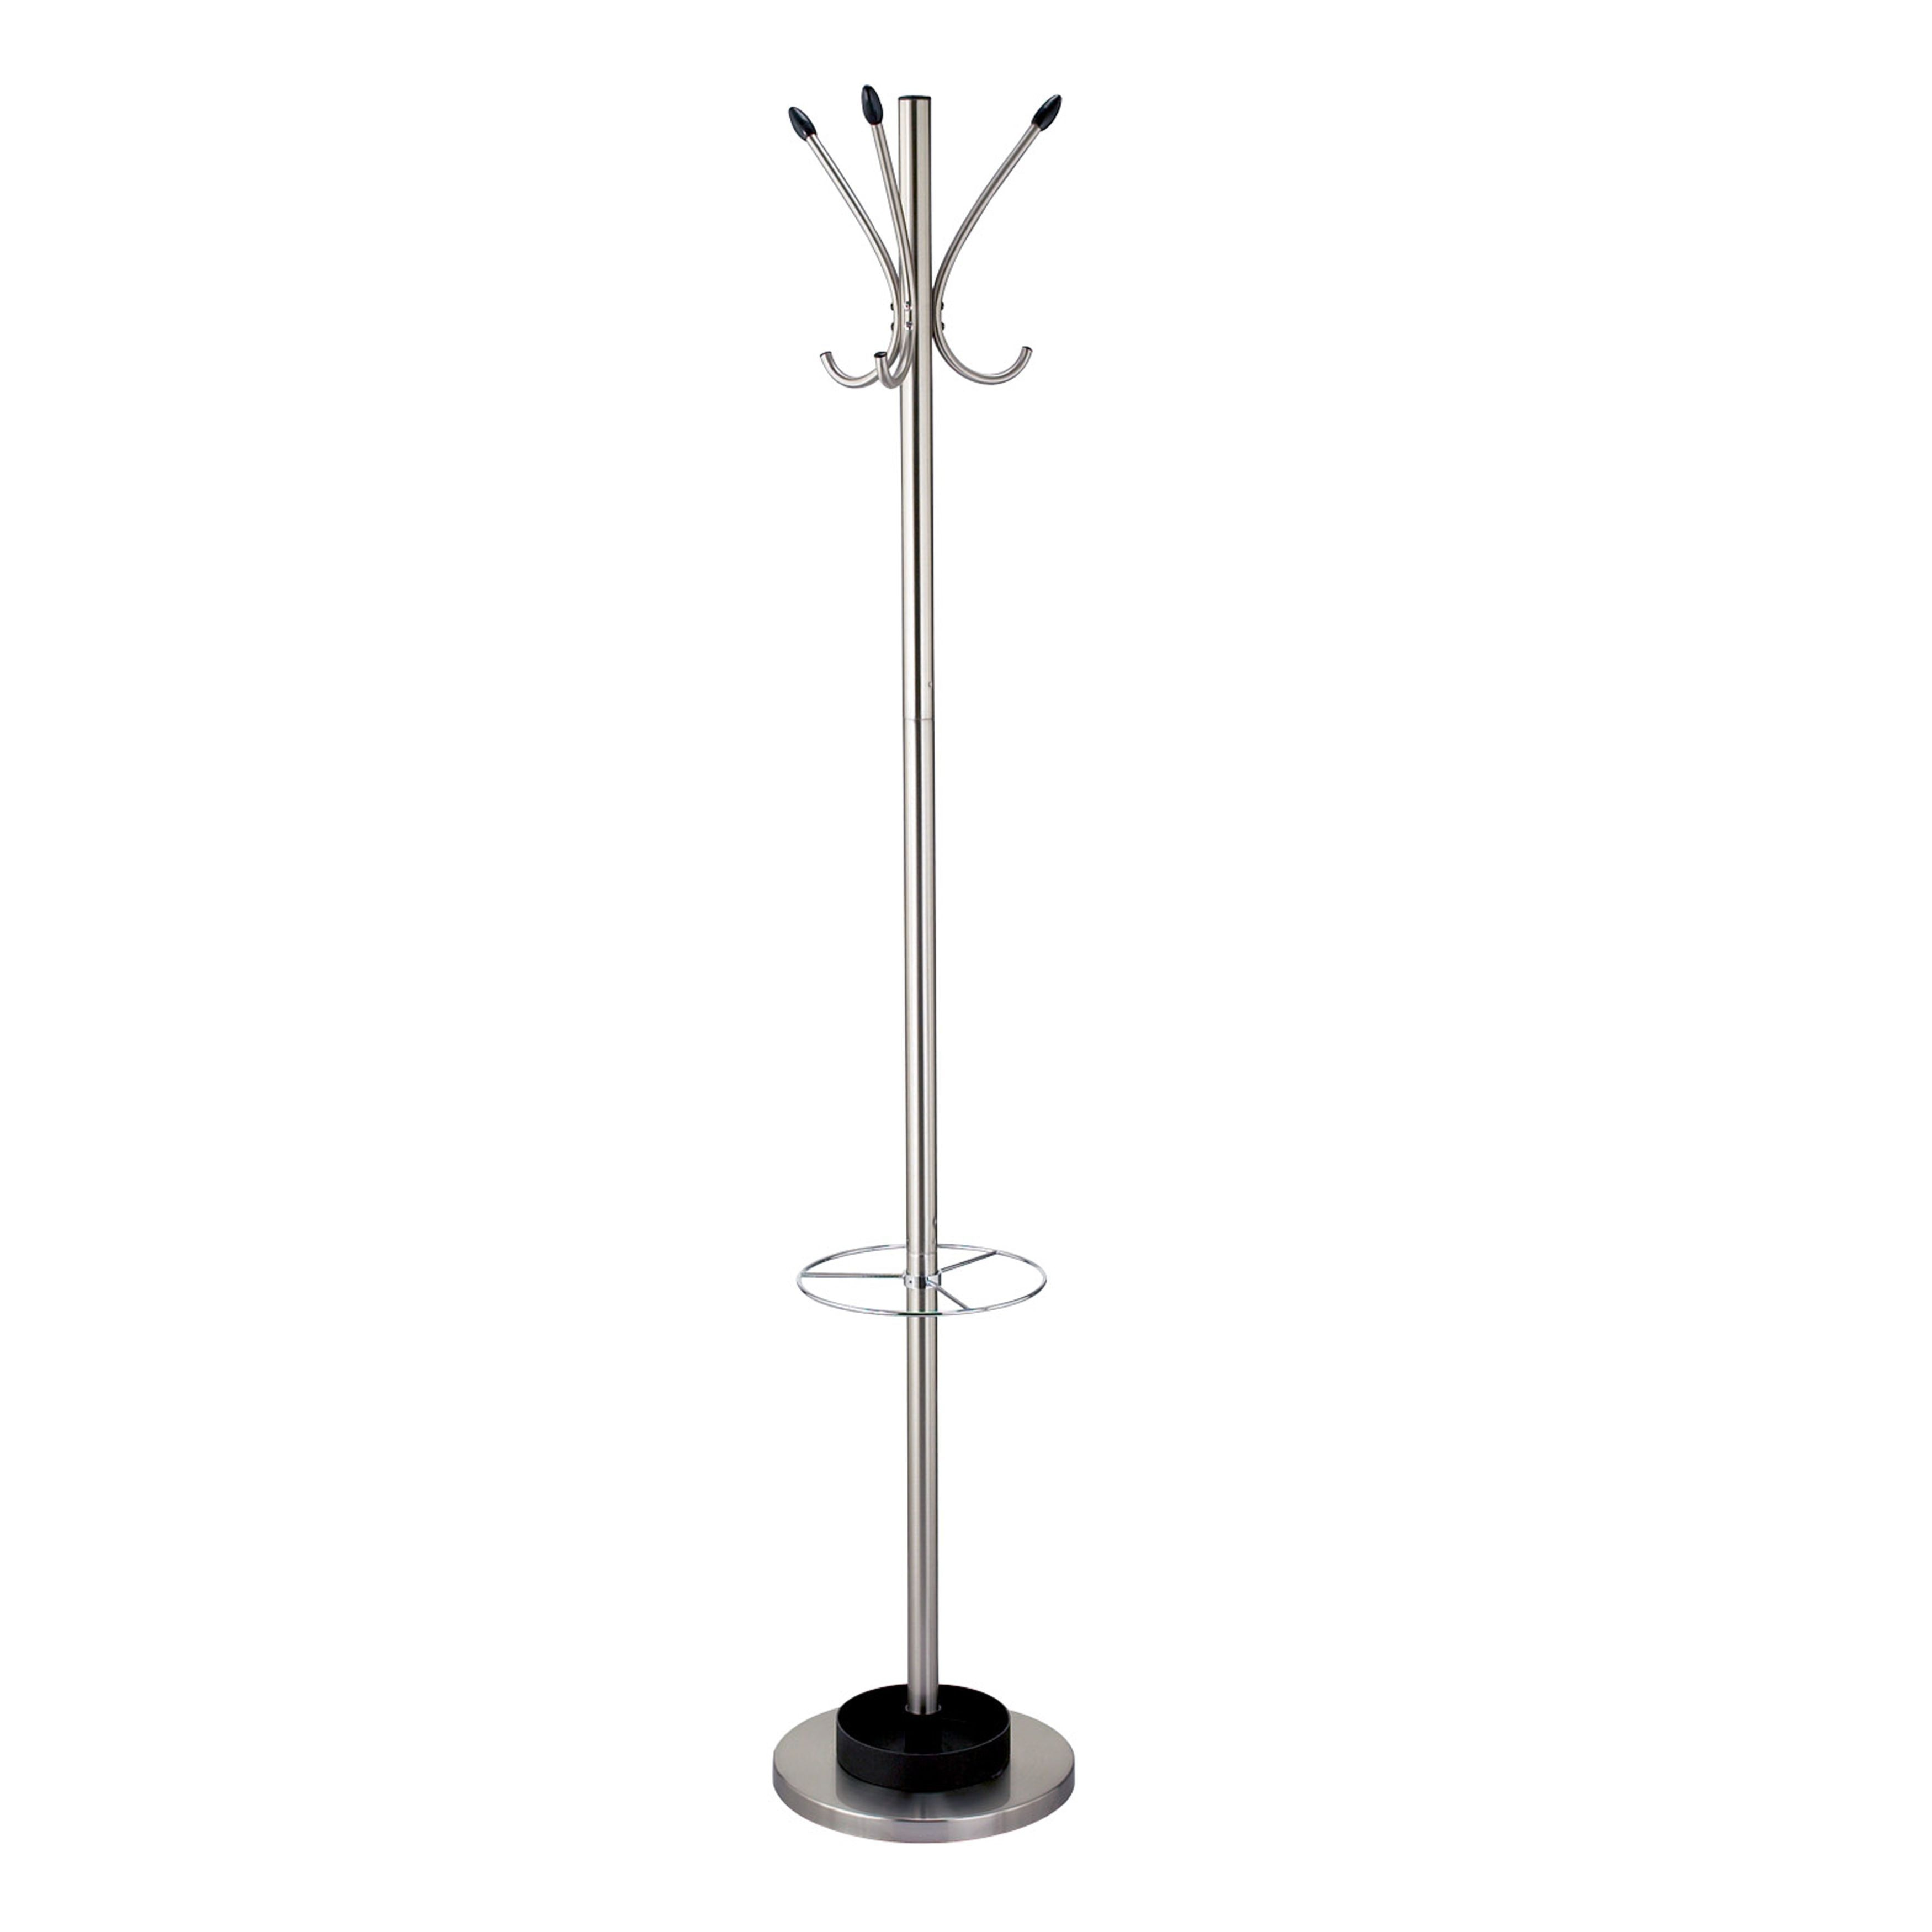 Adesso Umbrella Stand Coat Rack Free Shipping Today 11416426